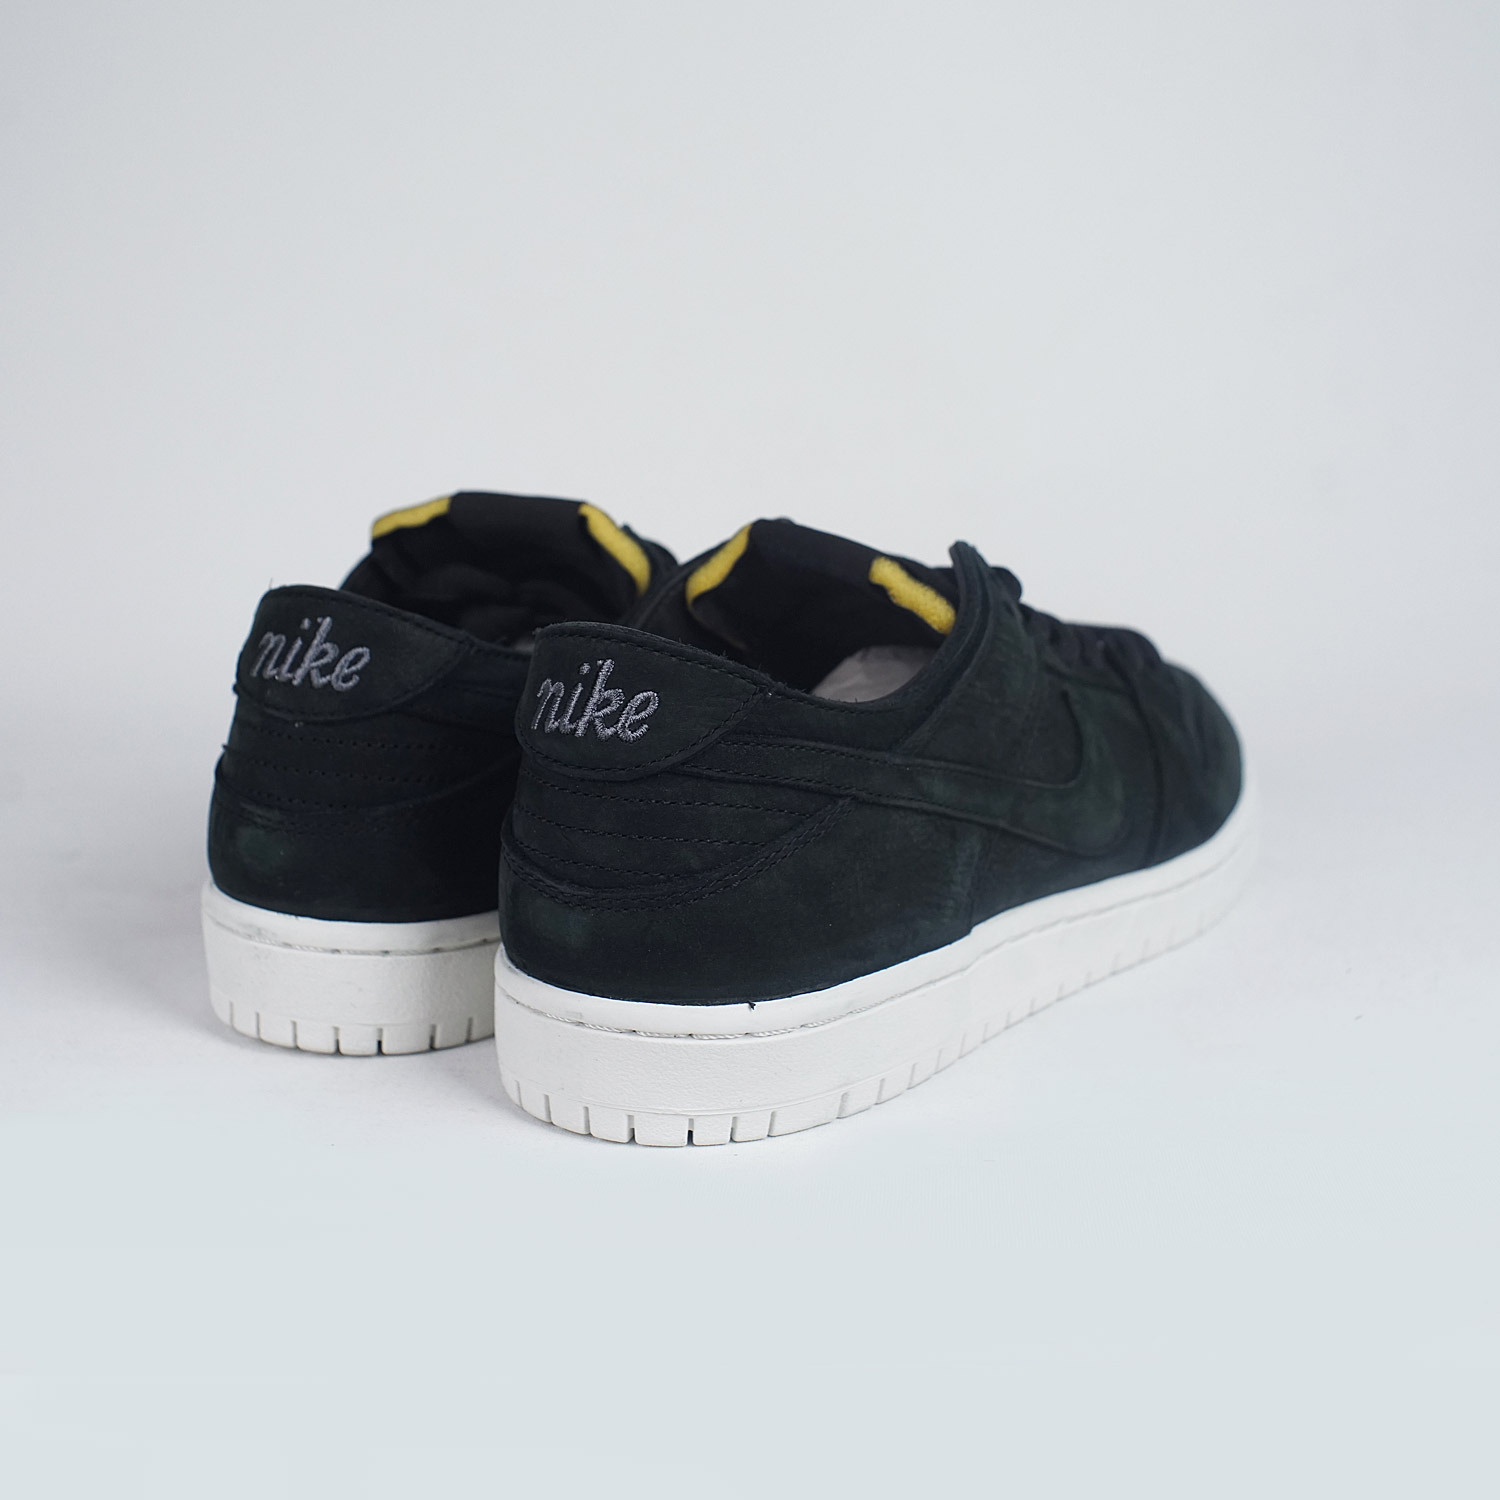 nike sb zoom dunk low pro deconstructed black white lobby. Black Bedroom Furniture Sets. Home Design Ideas